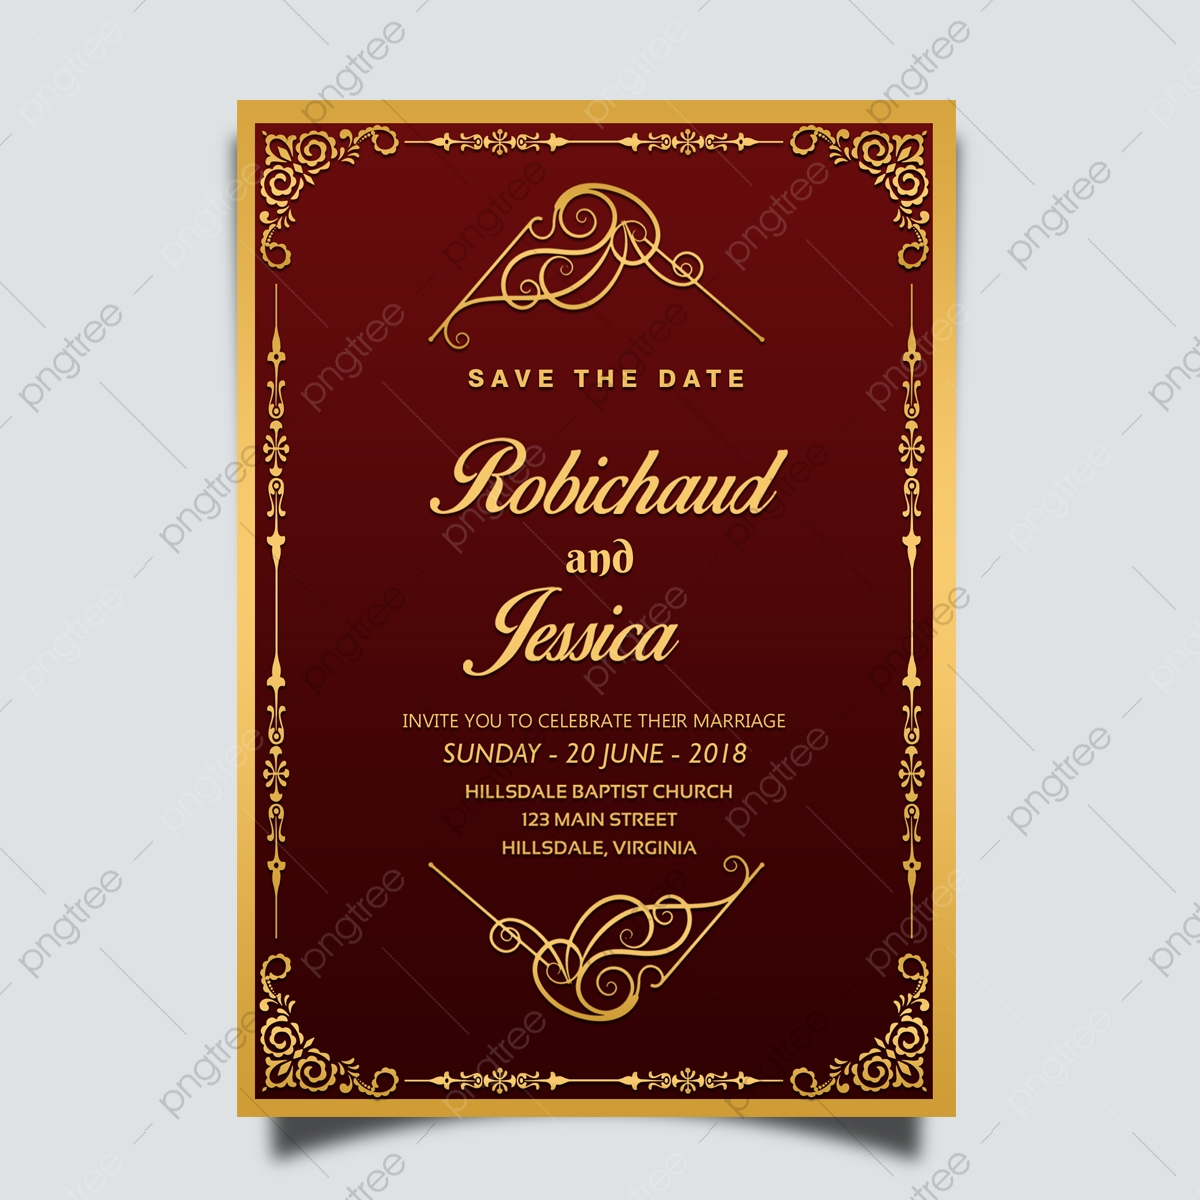 Wedding Invitation Card Design Template With Gold Floral Frame Template for  Free Download on Pngtree